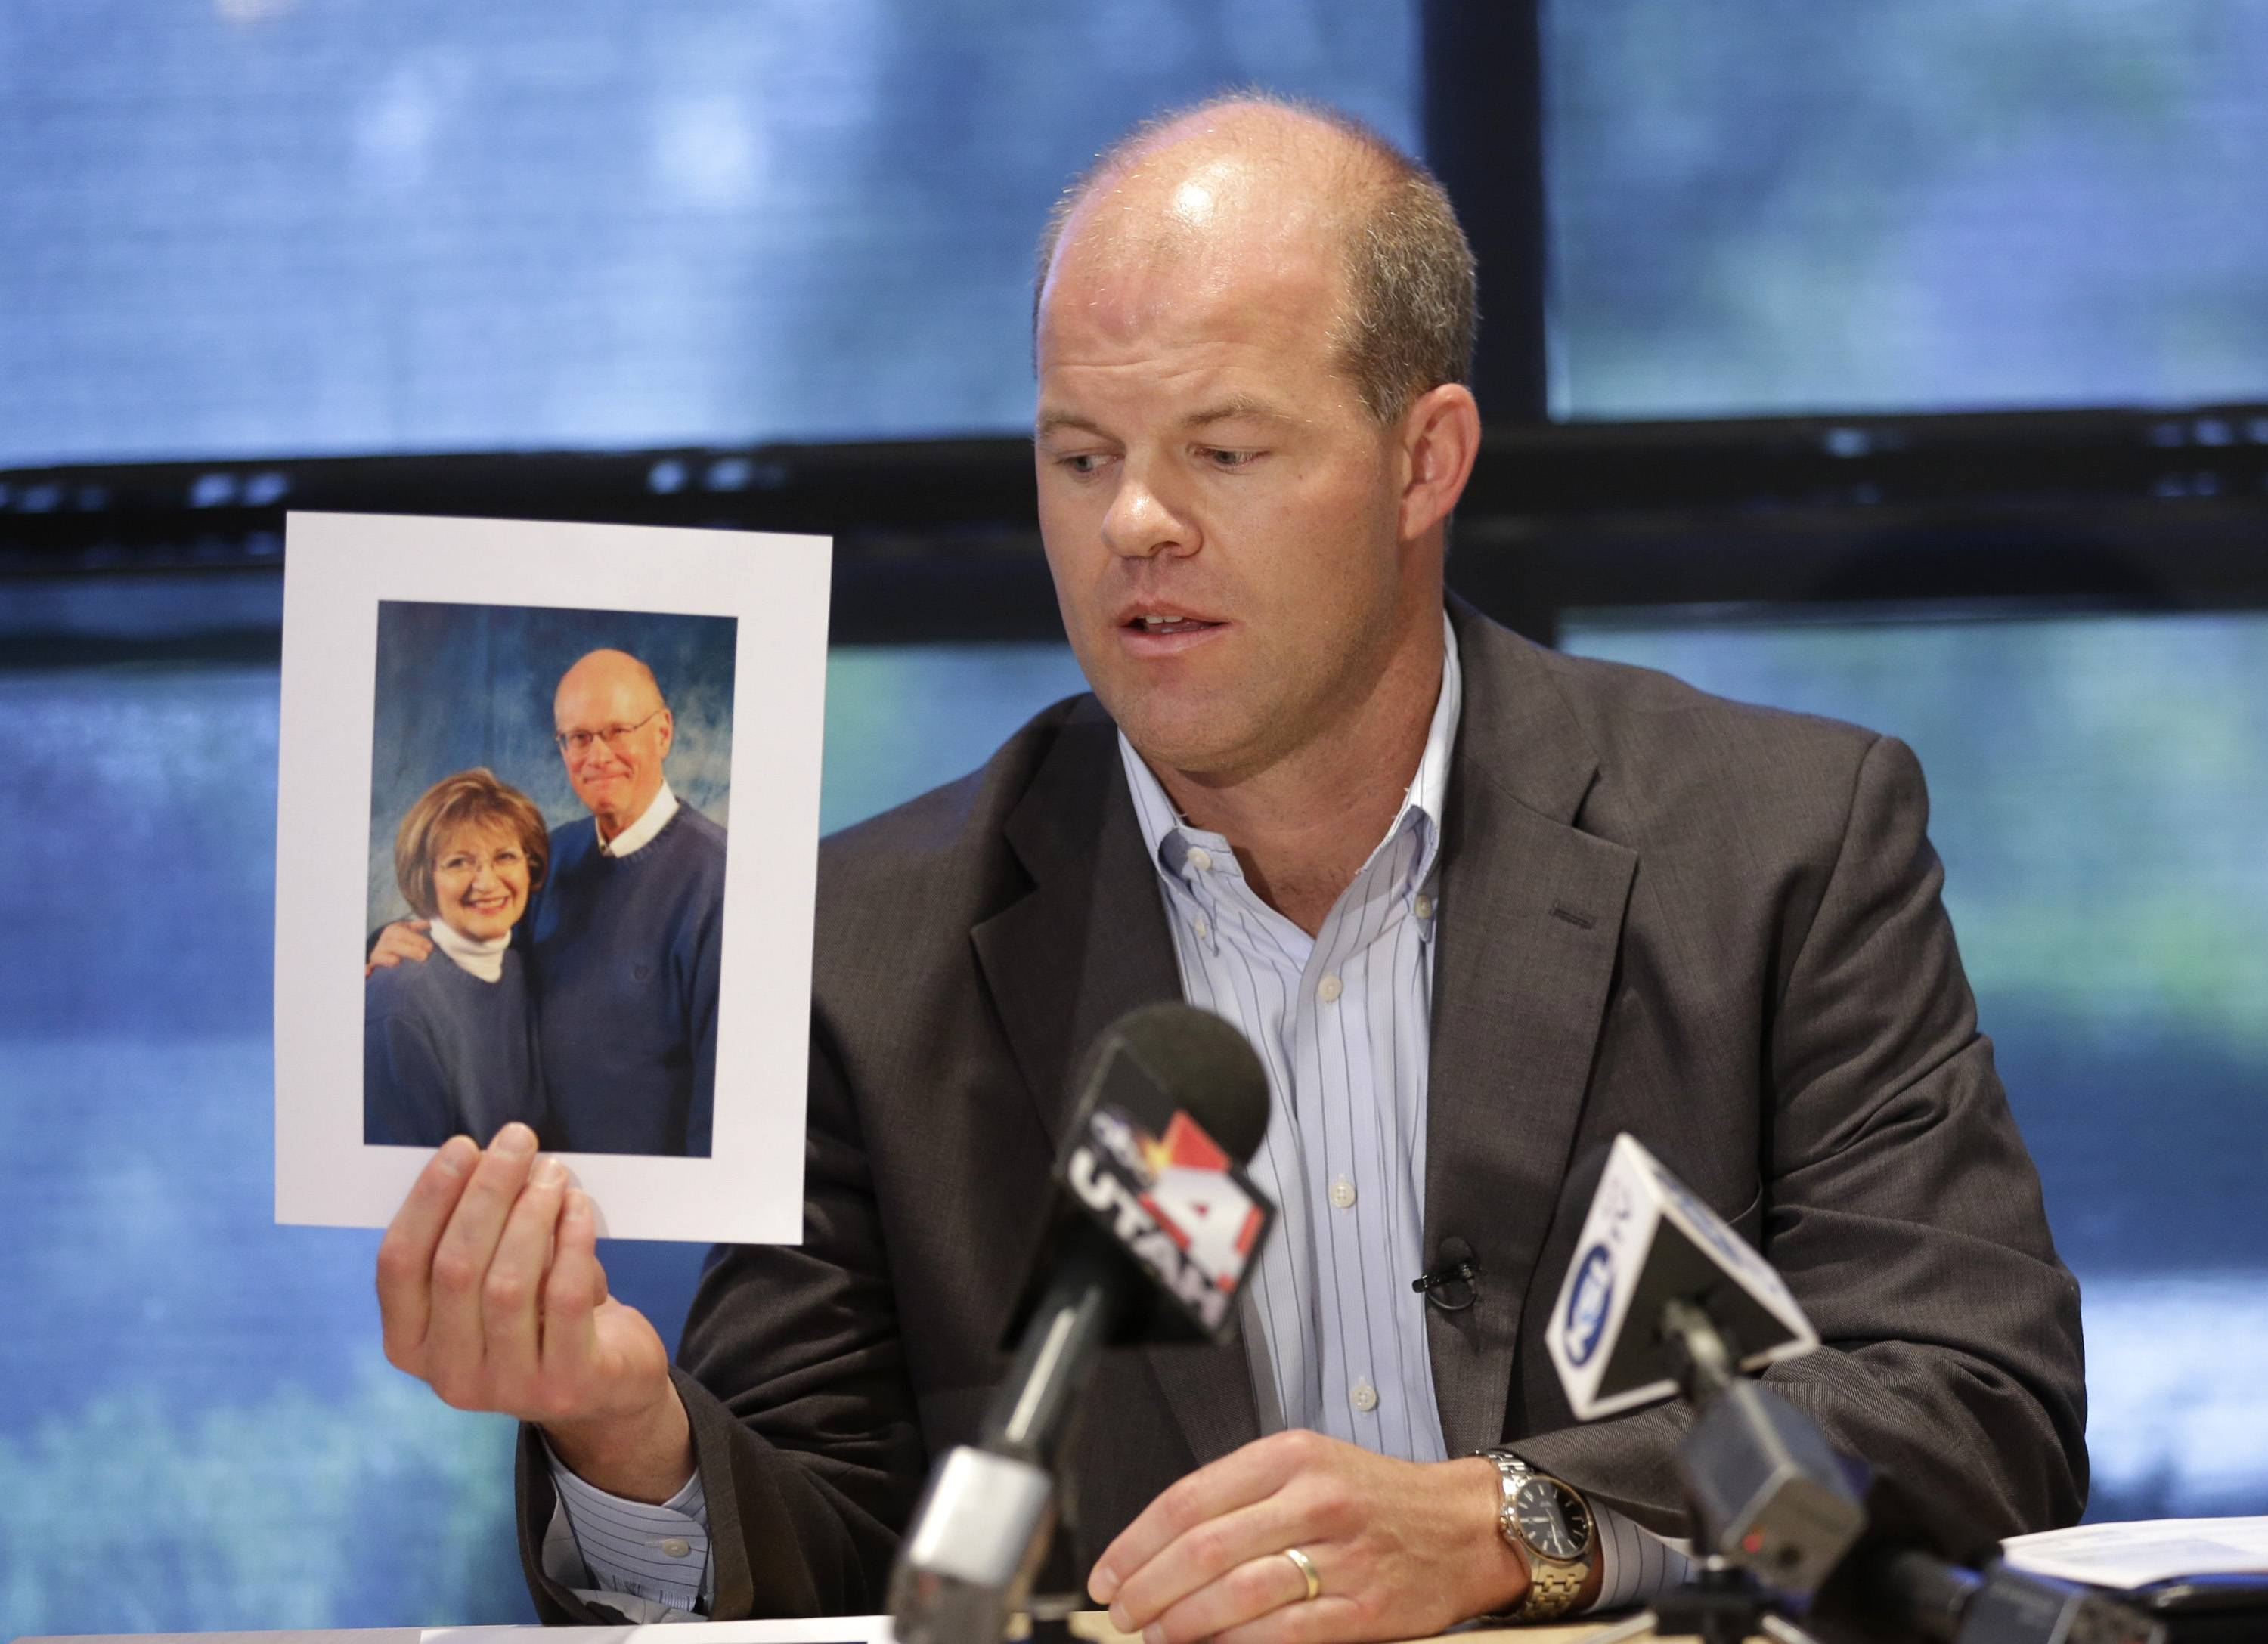 Attorney Paxton Guymon holds a photograph of Jim and Jan Harding during a news conference Thursday in Salt Lake City.